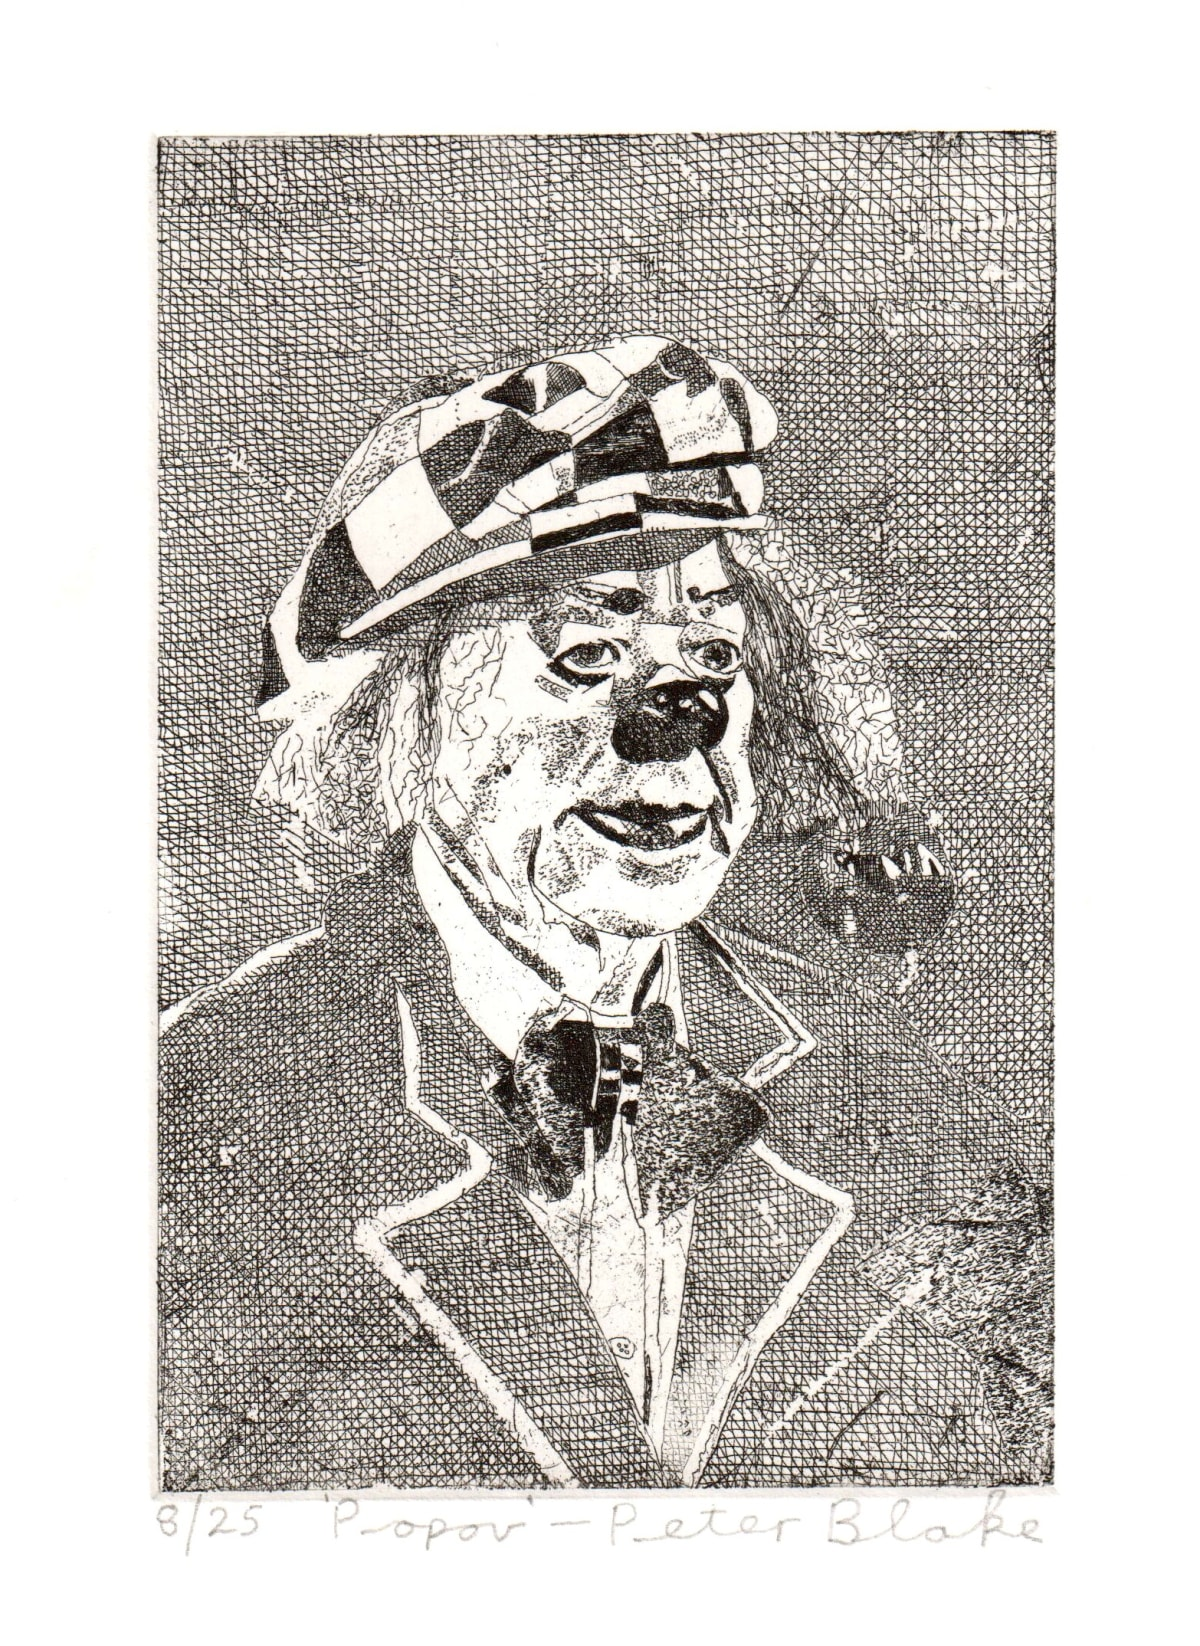 Peter Blake Popov, 2019 Etching on somerset 300gsm velvet Signed, titled and numbered Sheet Size: 26 x 21 cm Image size: 10 x 15 cm Edition of 25